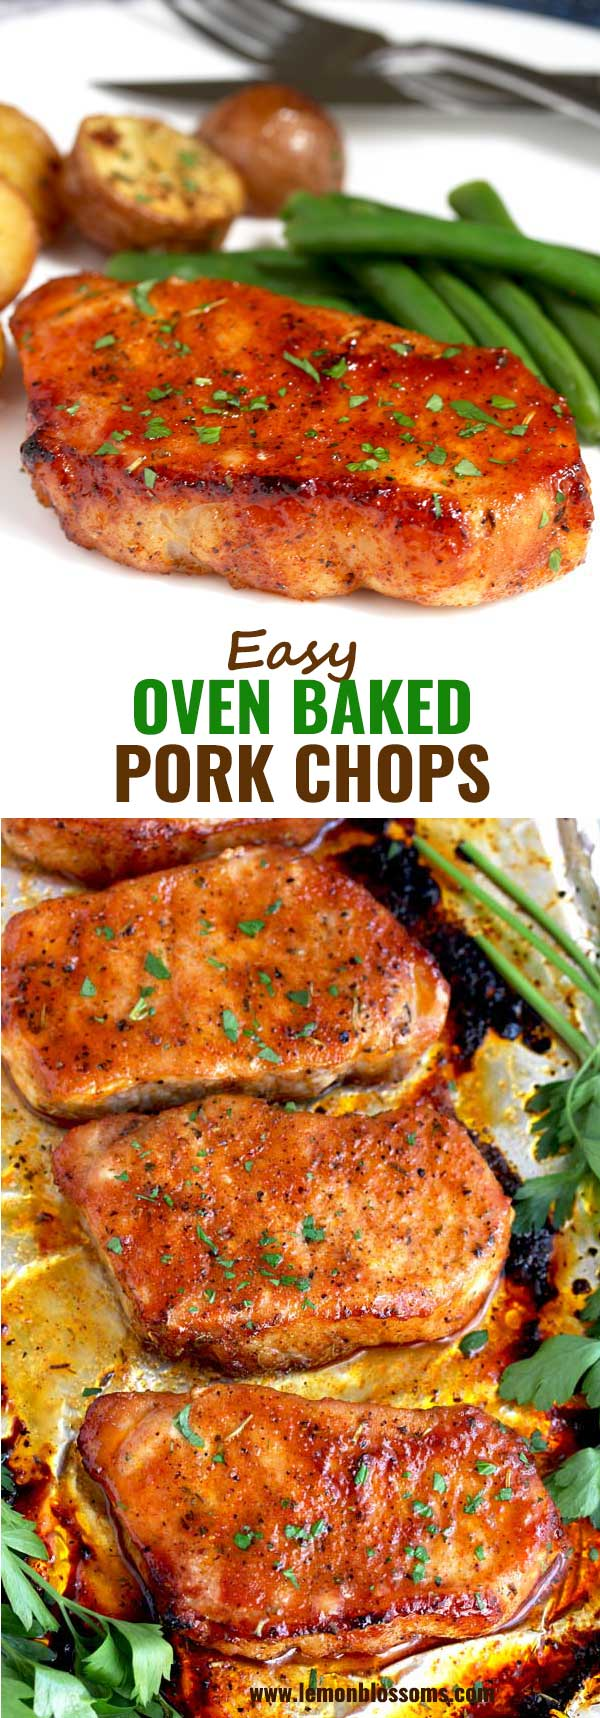 These Oven Baked Pork Chops are seasoned with simple spices and then baked to perfection. This baked pork chop recipe produces succulent, tender, juicy and flavorful pork chops every time! #baked #intheoven #easy #recipe #brownsugar